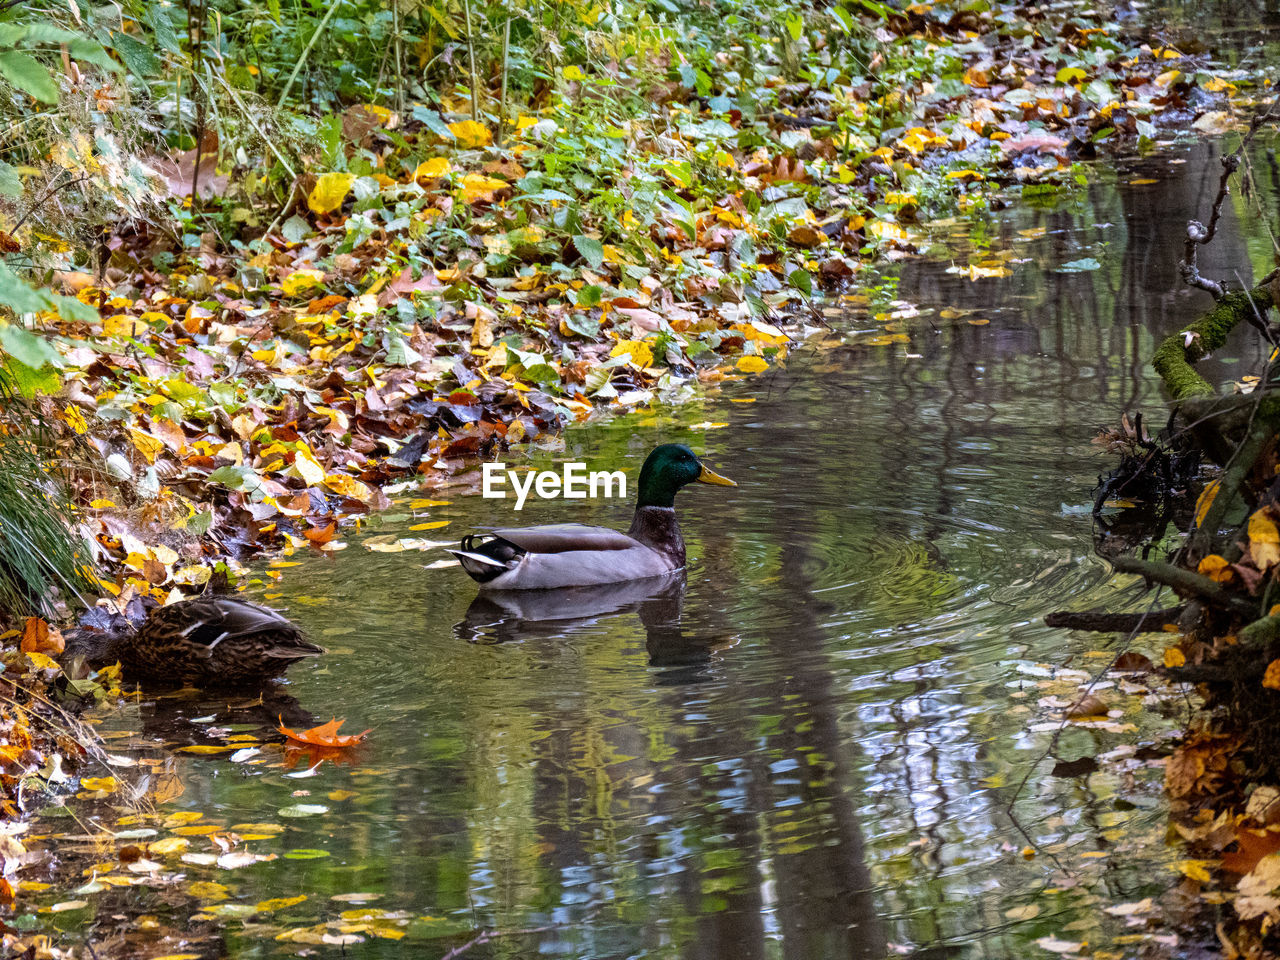 animals in the wild, water, animal wildlife, bird, animal themes, animal, lake, vertebrate, swimming, group of animals, nature, day, no people, leaf, reflection, plant part, plant, outdoors, poultry, duck, floating on water, animal family